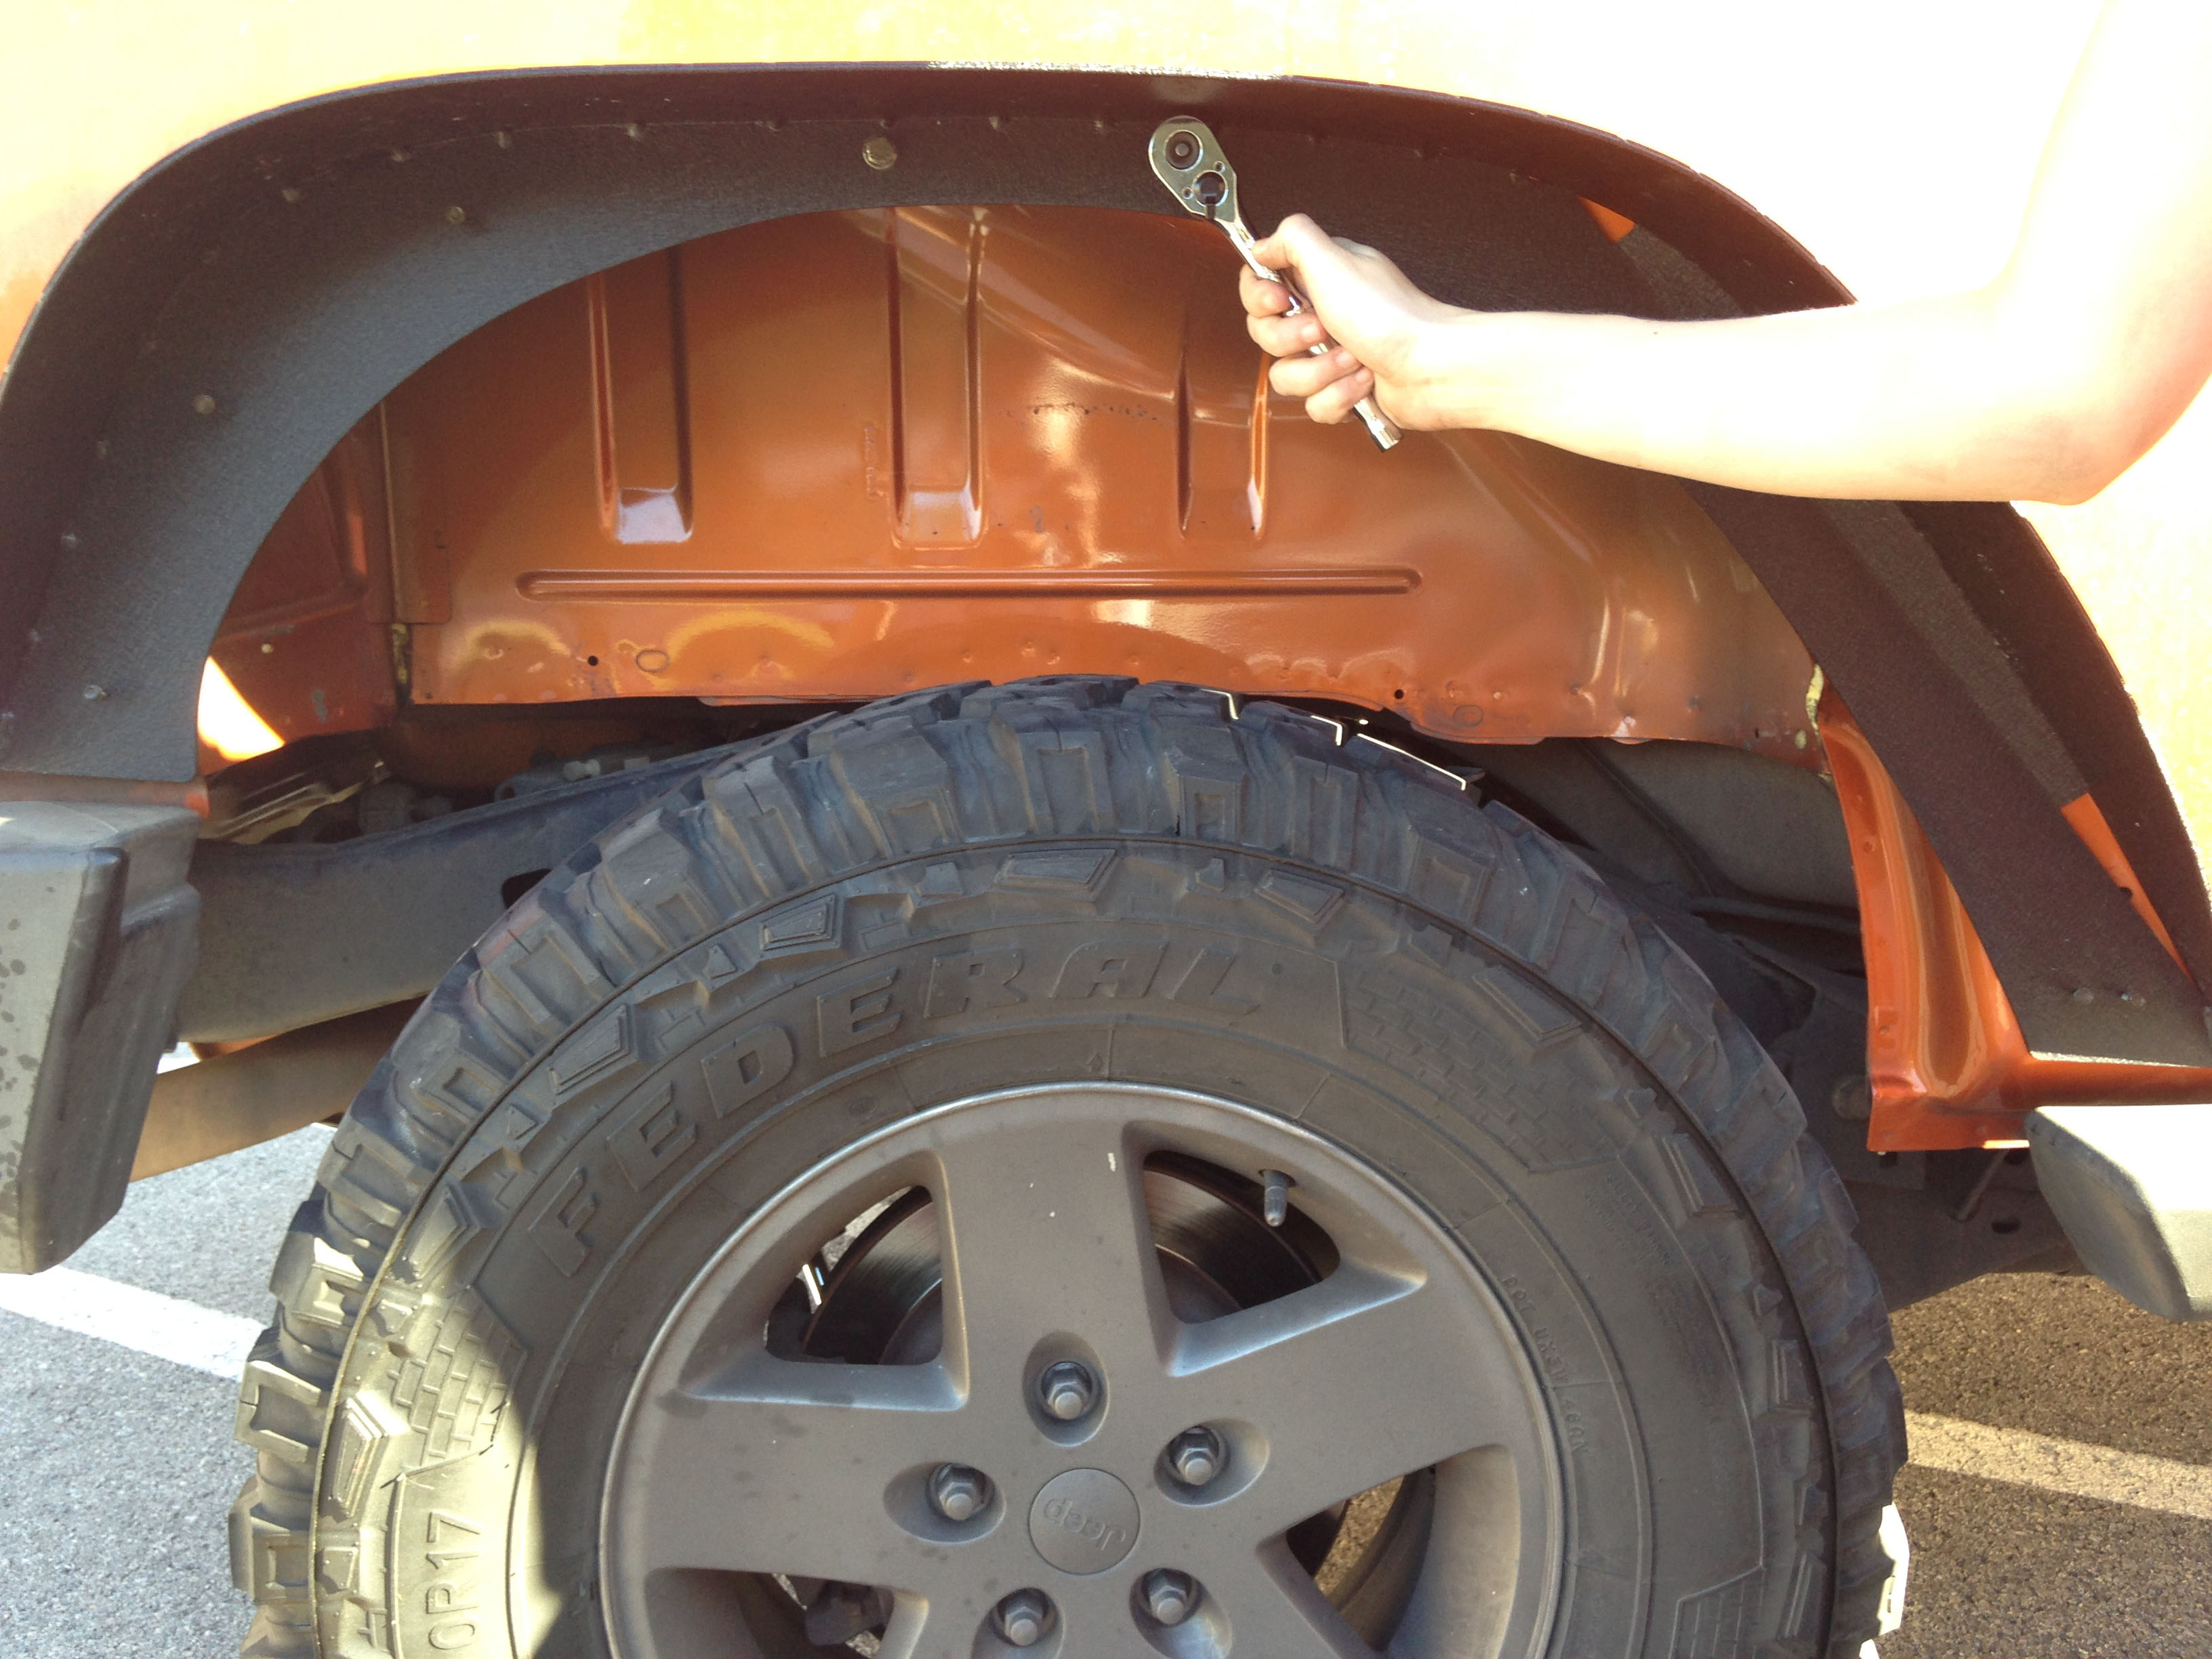 How To Install Smittybilt Xrc Fender Flares On Your 2007 2016 Installing Jeep Once In Place Go Back And Tighten All Bolts Use The Mounting Holes New Flare As Guides For 5 Tapping Screws Installation Instructions